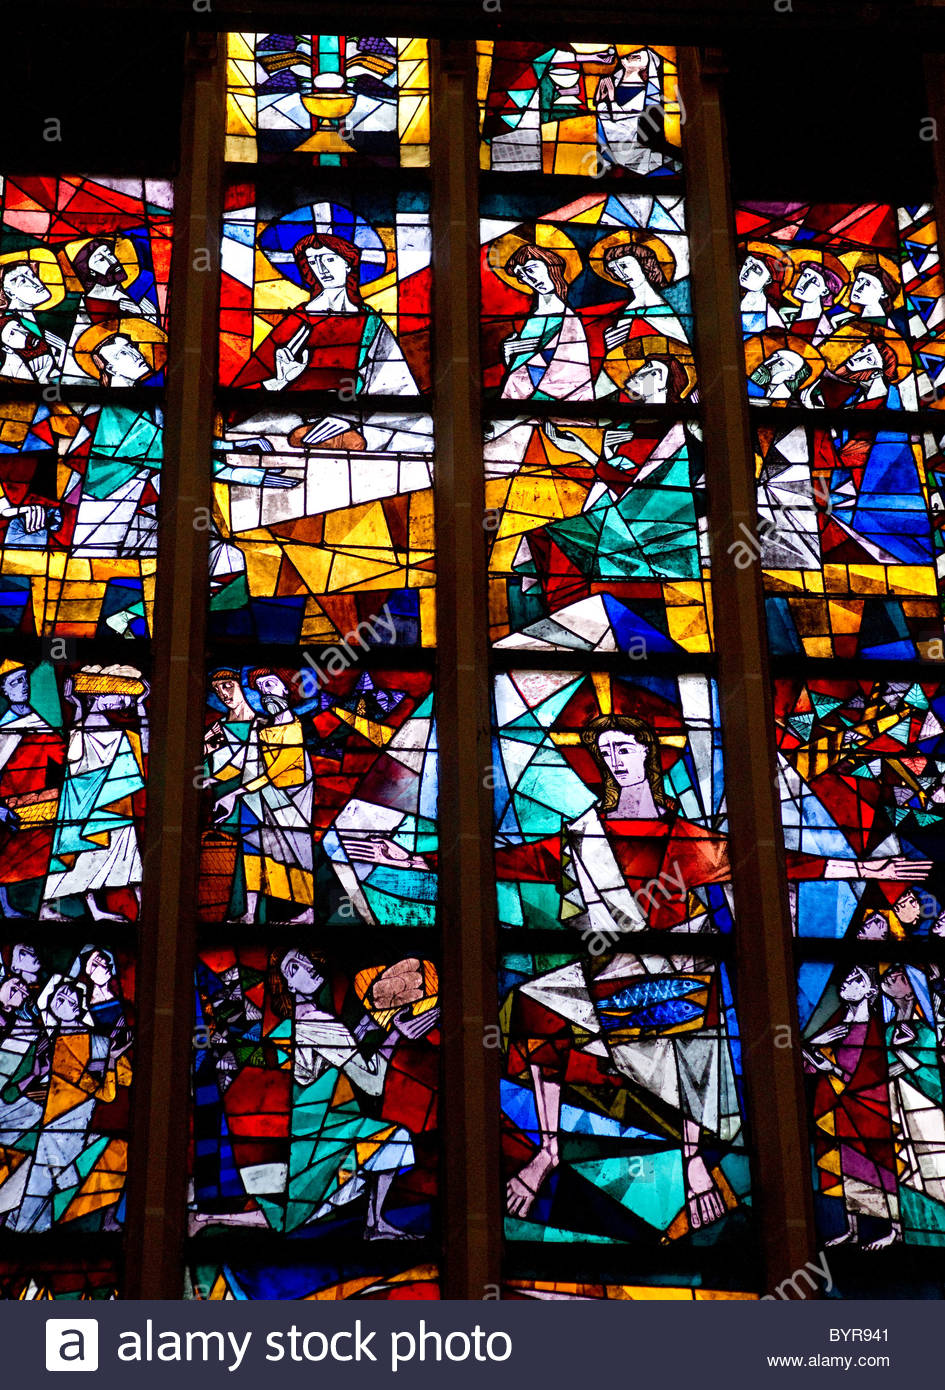 Stained glass windows inside a church – Munich Germany Stock Photo